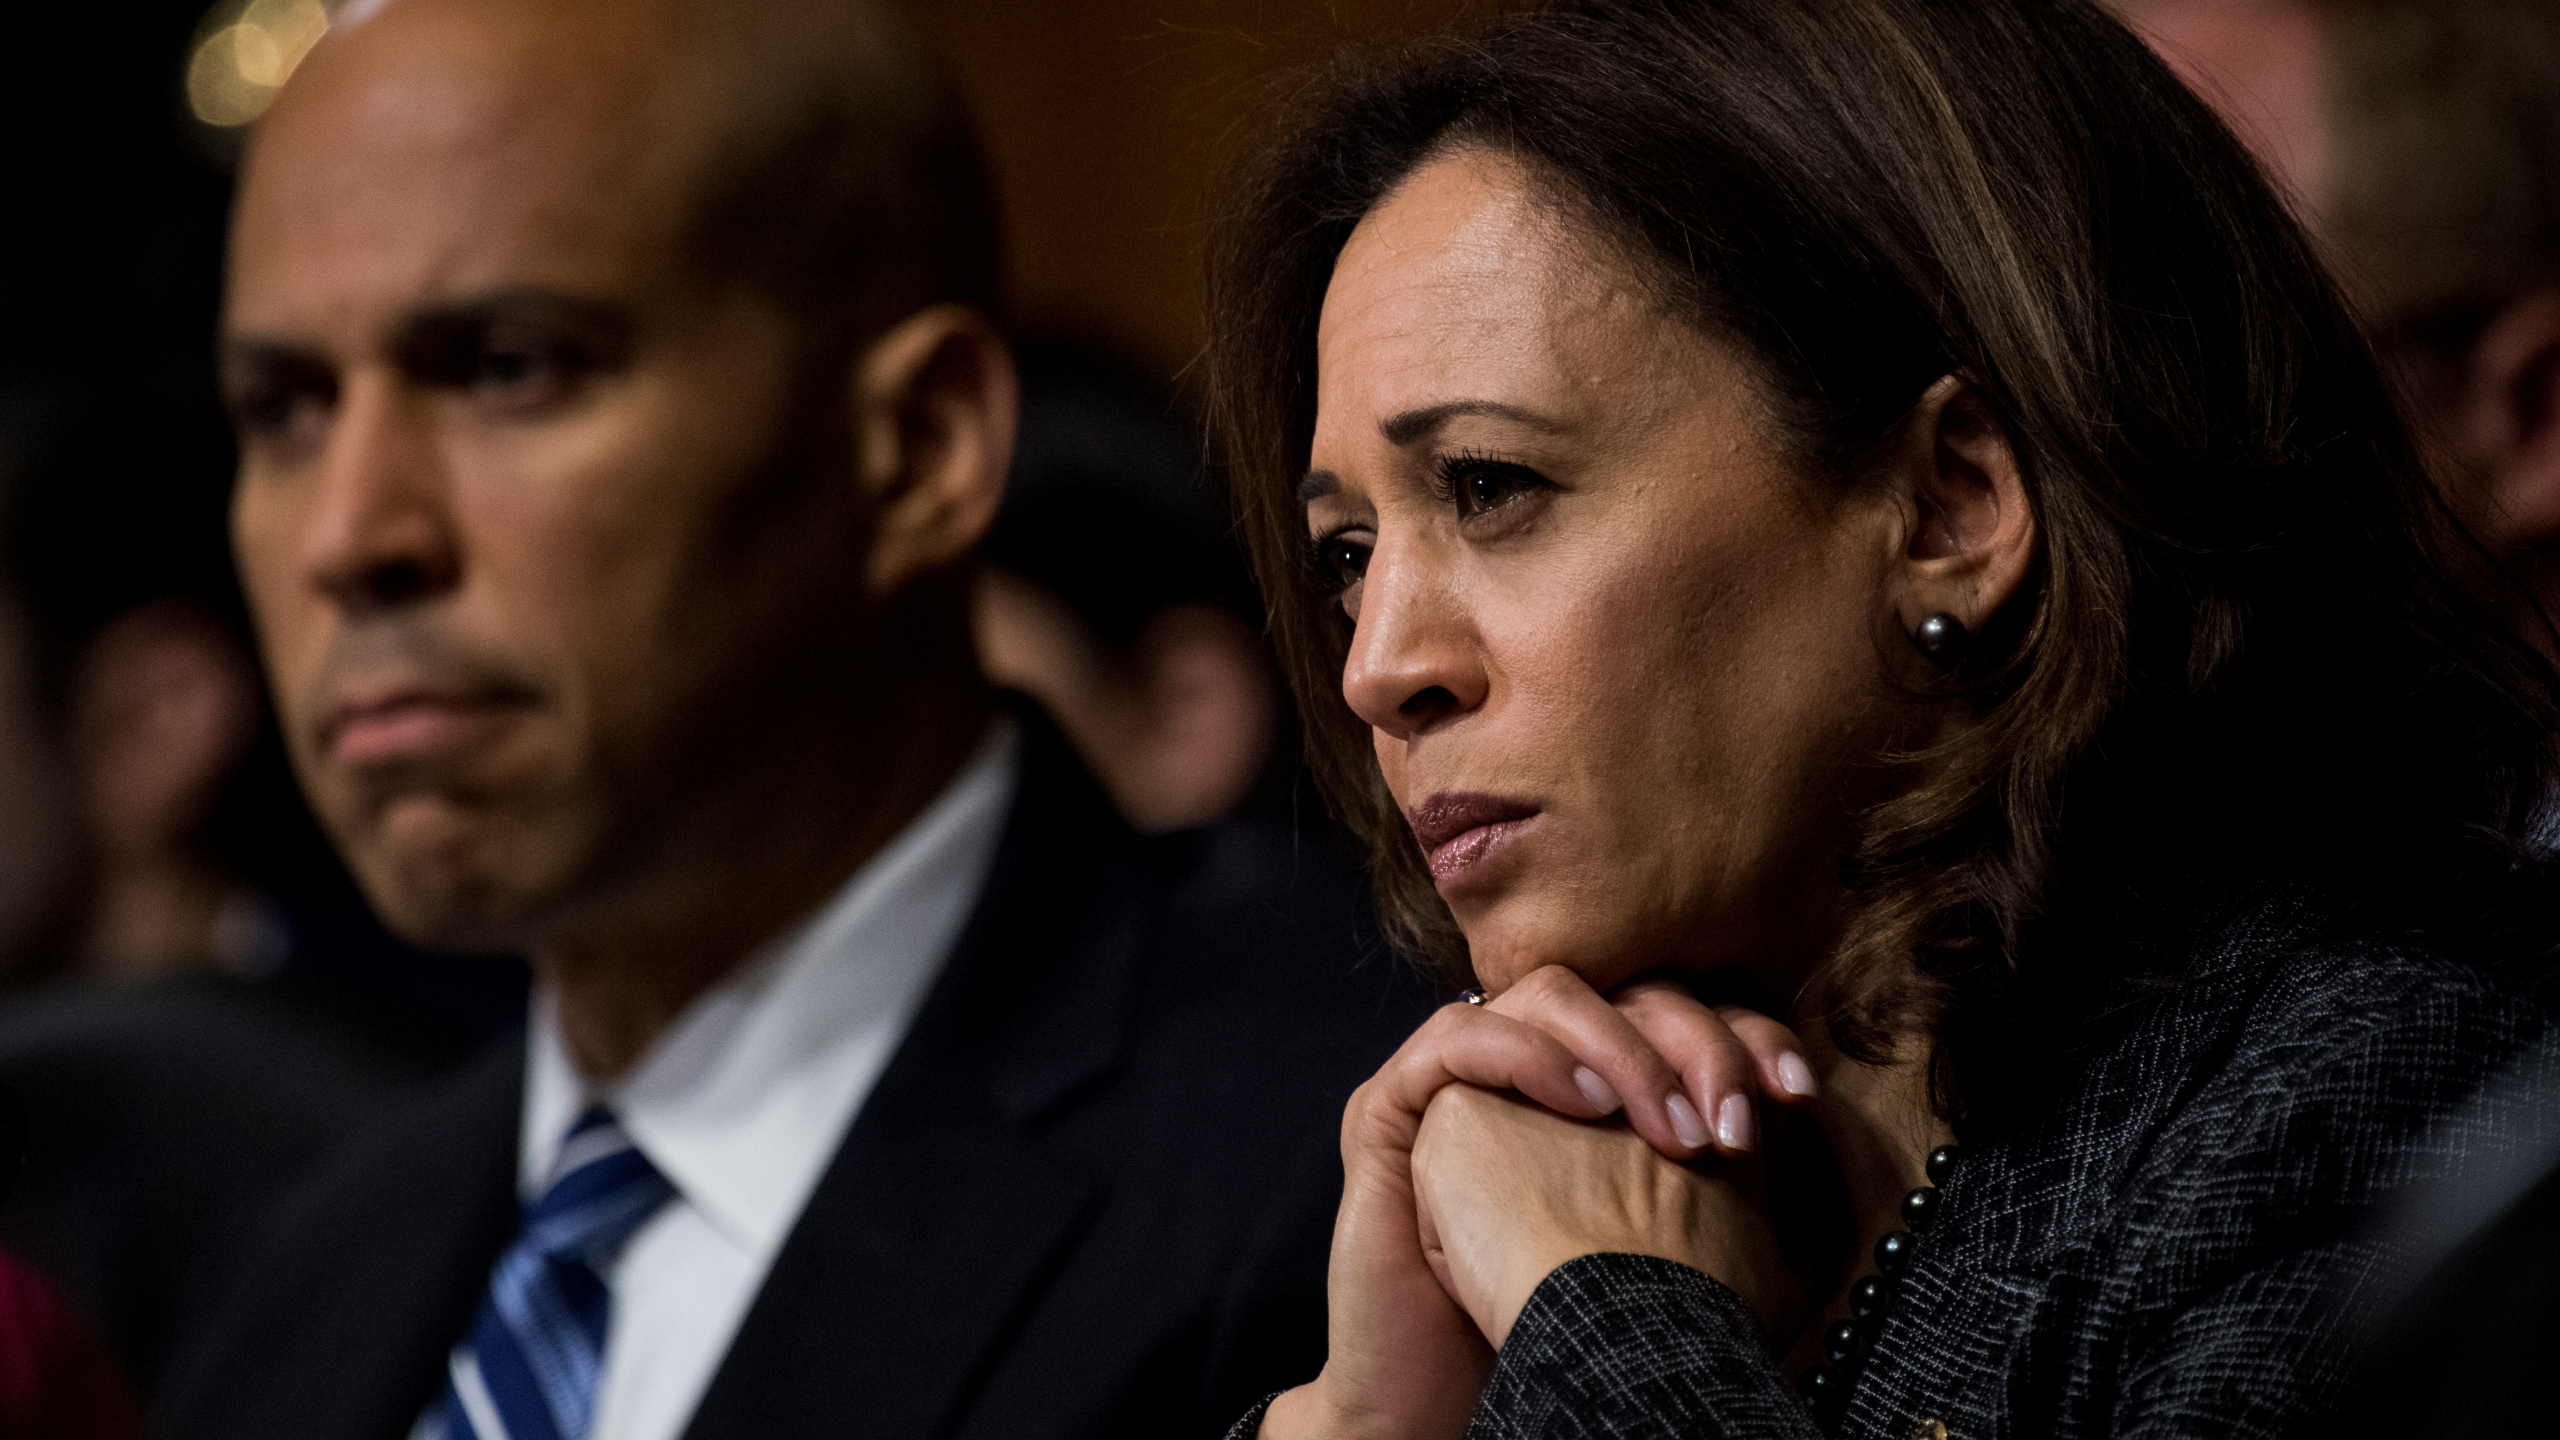 Sen. Cory Booker (D-N.J.) and Sen. Kamala Harris (D-Calif.) listen as Dr. Christine Blasey Ford testifies during the Senate Judiciary Committee hearing on the nomination of Brett M. Kavanaugh to be an associate justice of the Supreme Court of the United States on Capitol Hill Sept. 27, 2018, in Washington, D.C. The two and South Carolina Sen. Tim Scott proposed a bill to outlaw lynching that passed in the Senate on Dec. 19, 2018. (Credit: Tom Williams-Pool/Getty Images)